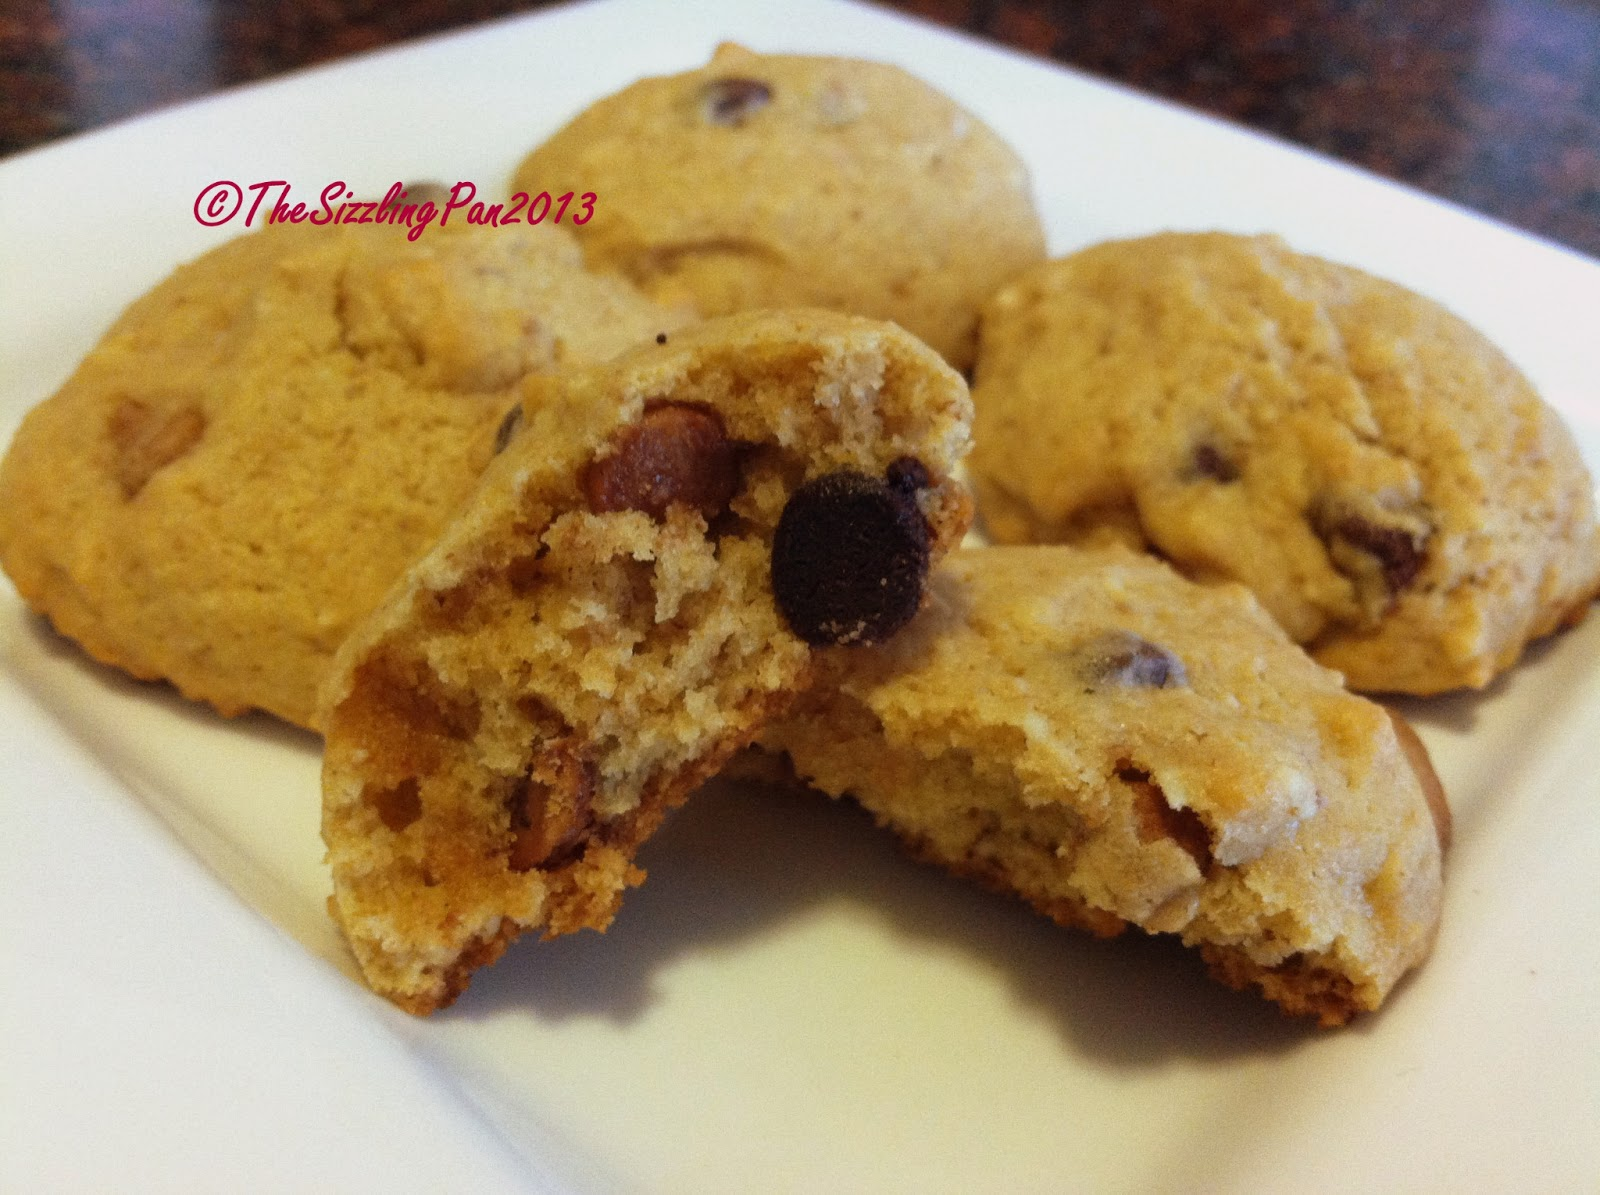 """The Sizzling Pan: """"Whole Wheat"""" Almond and Chocolate Chip Cookies"""